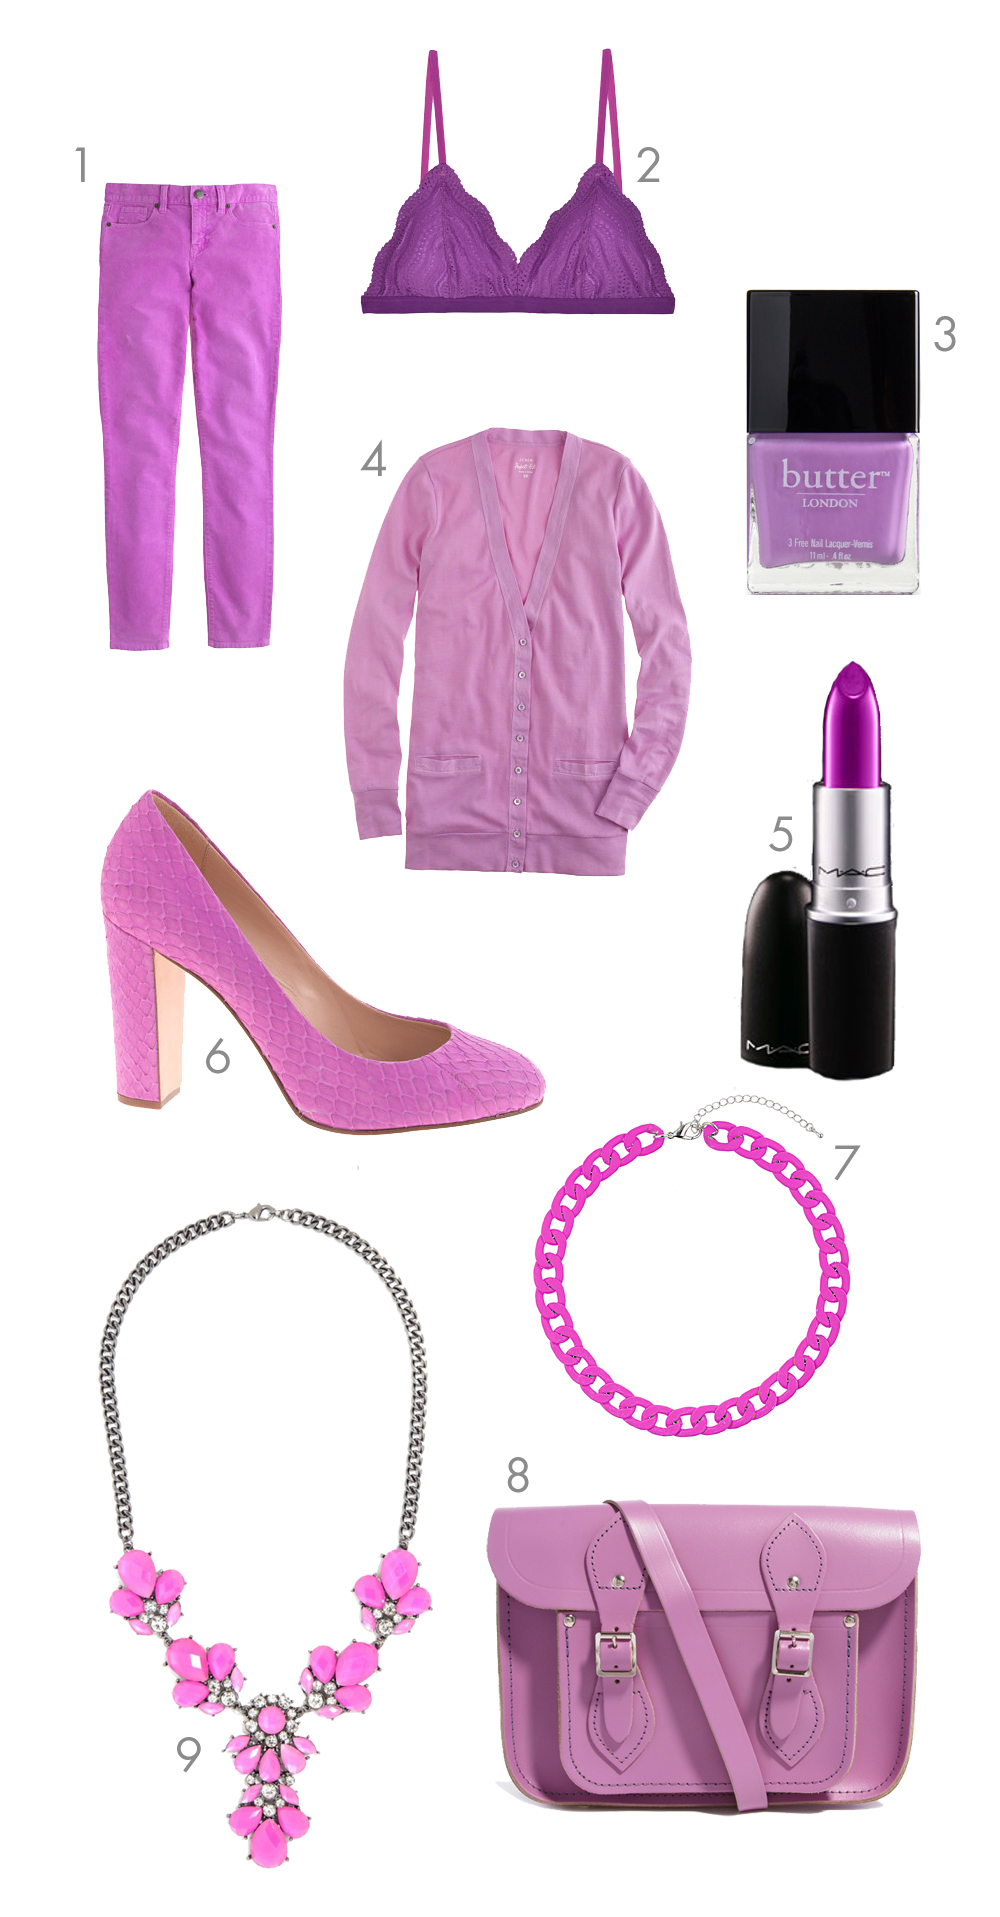 radiant-orchid-clothes-and-accessories